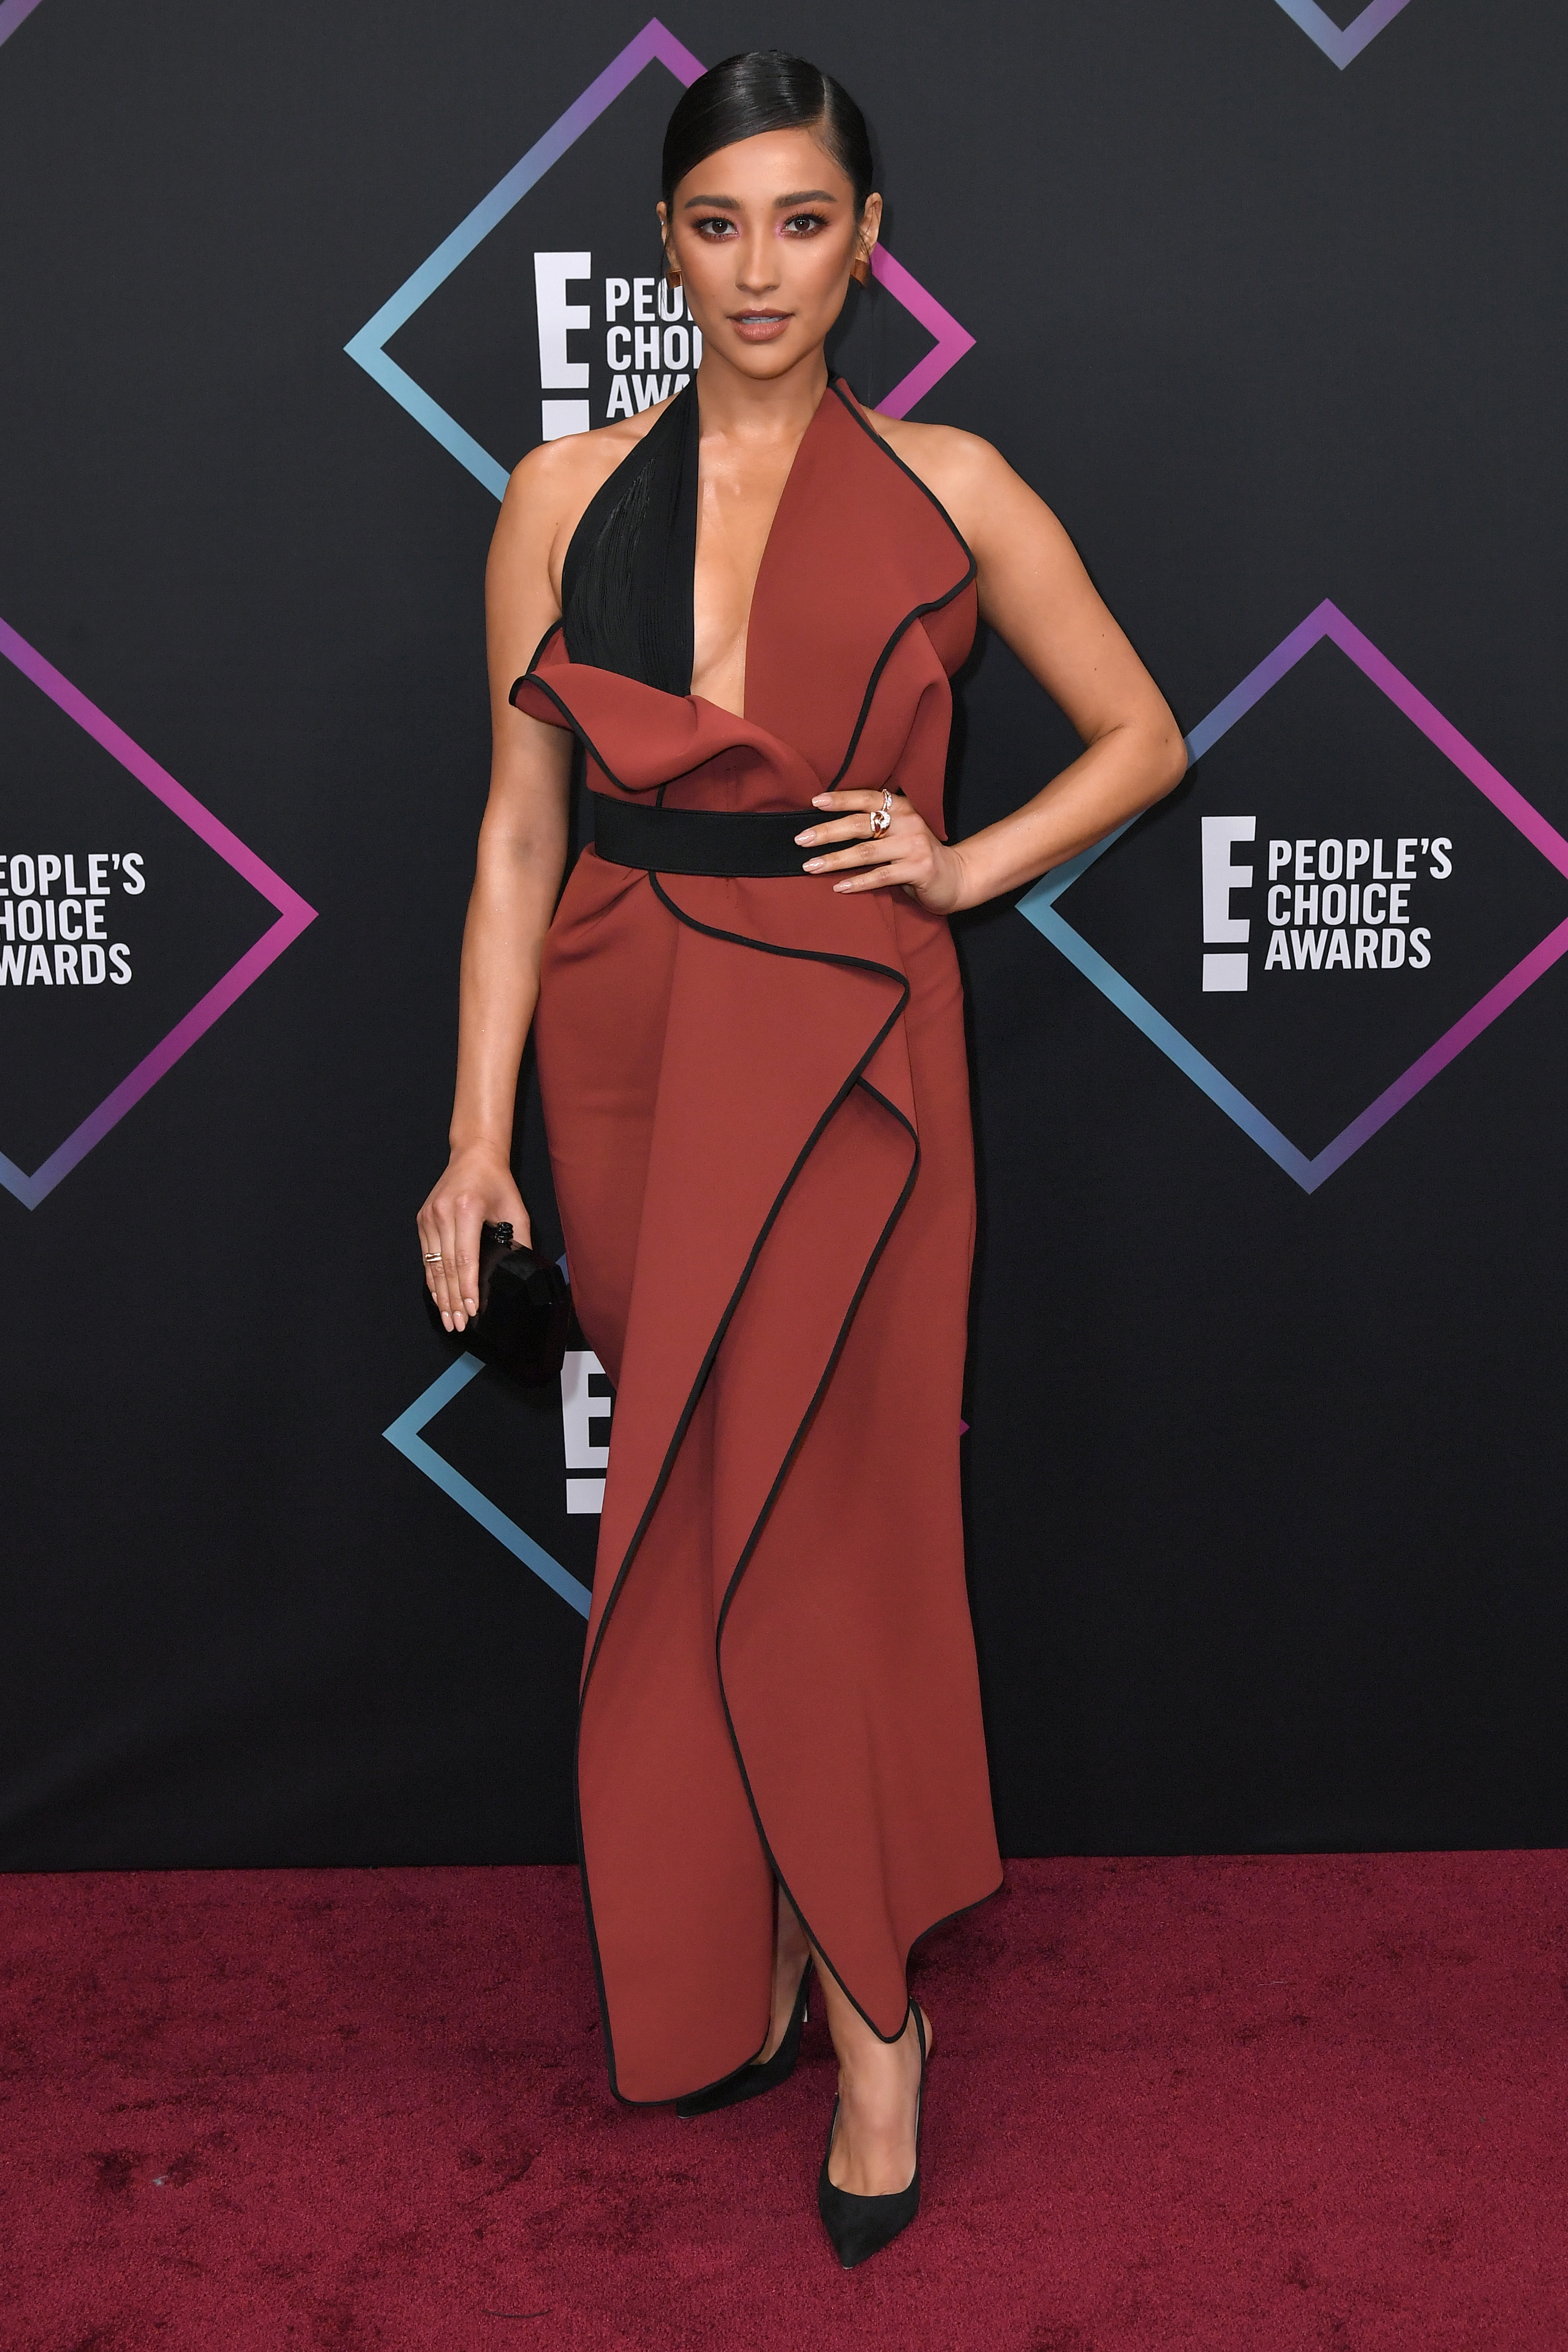 Shay Mitchell attends the People's Choice Awards in Los Angeles on Nov. 11, 2018.